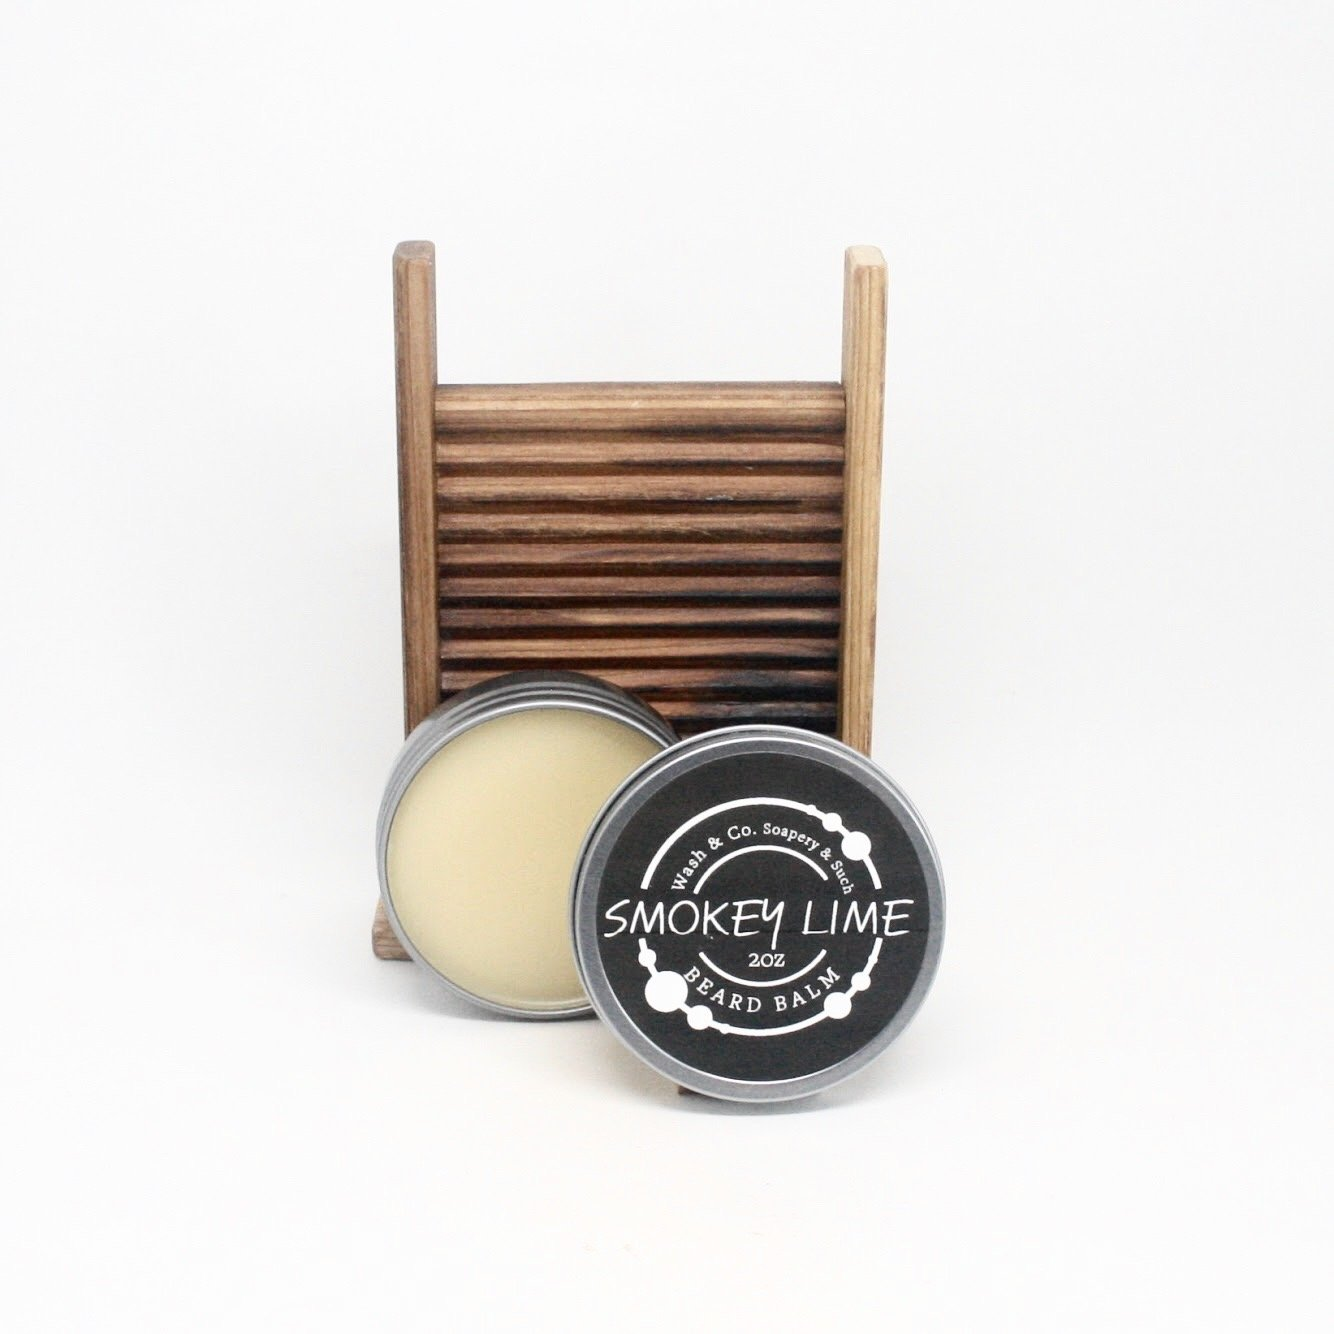 Beard Balm Smokey Lime 2oz Tin